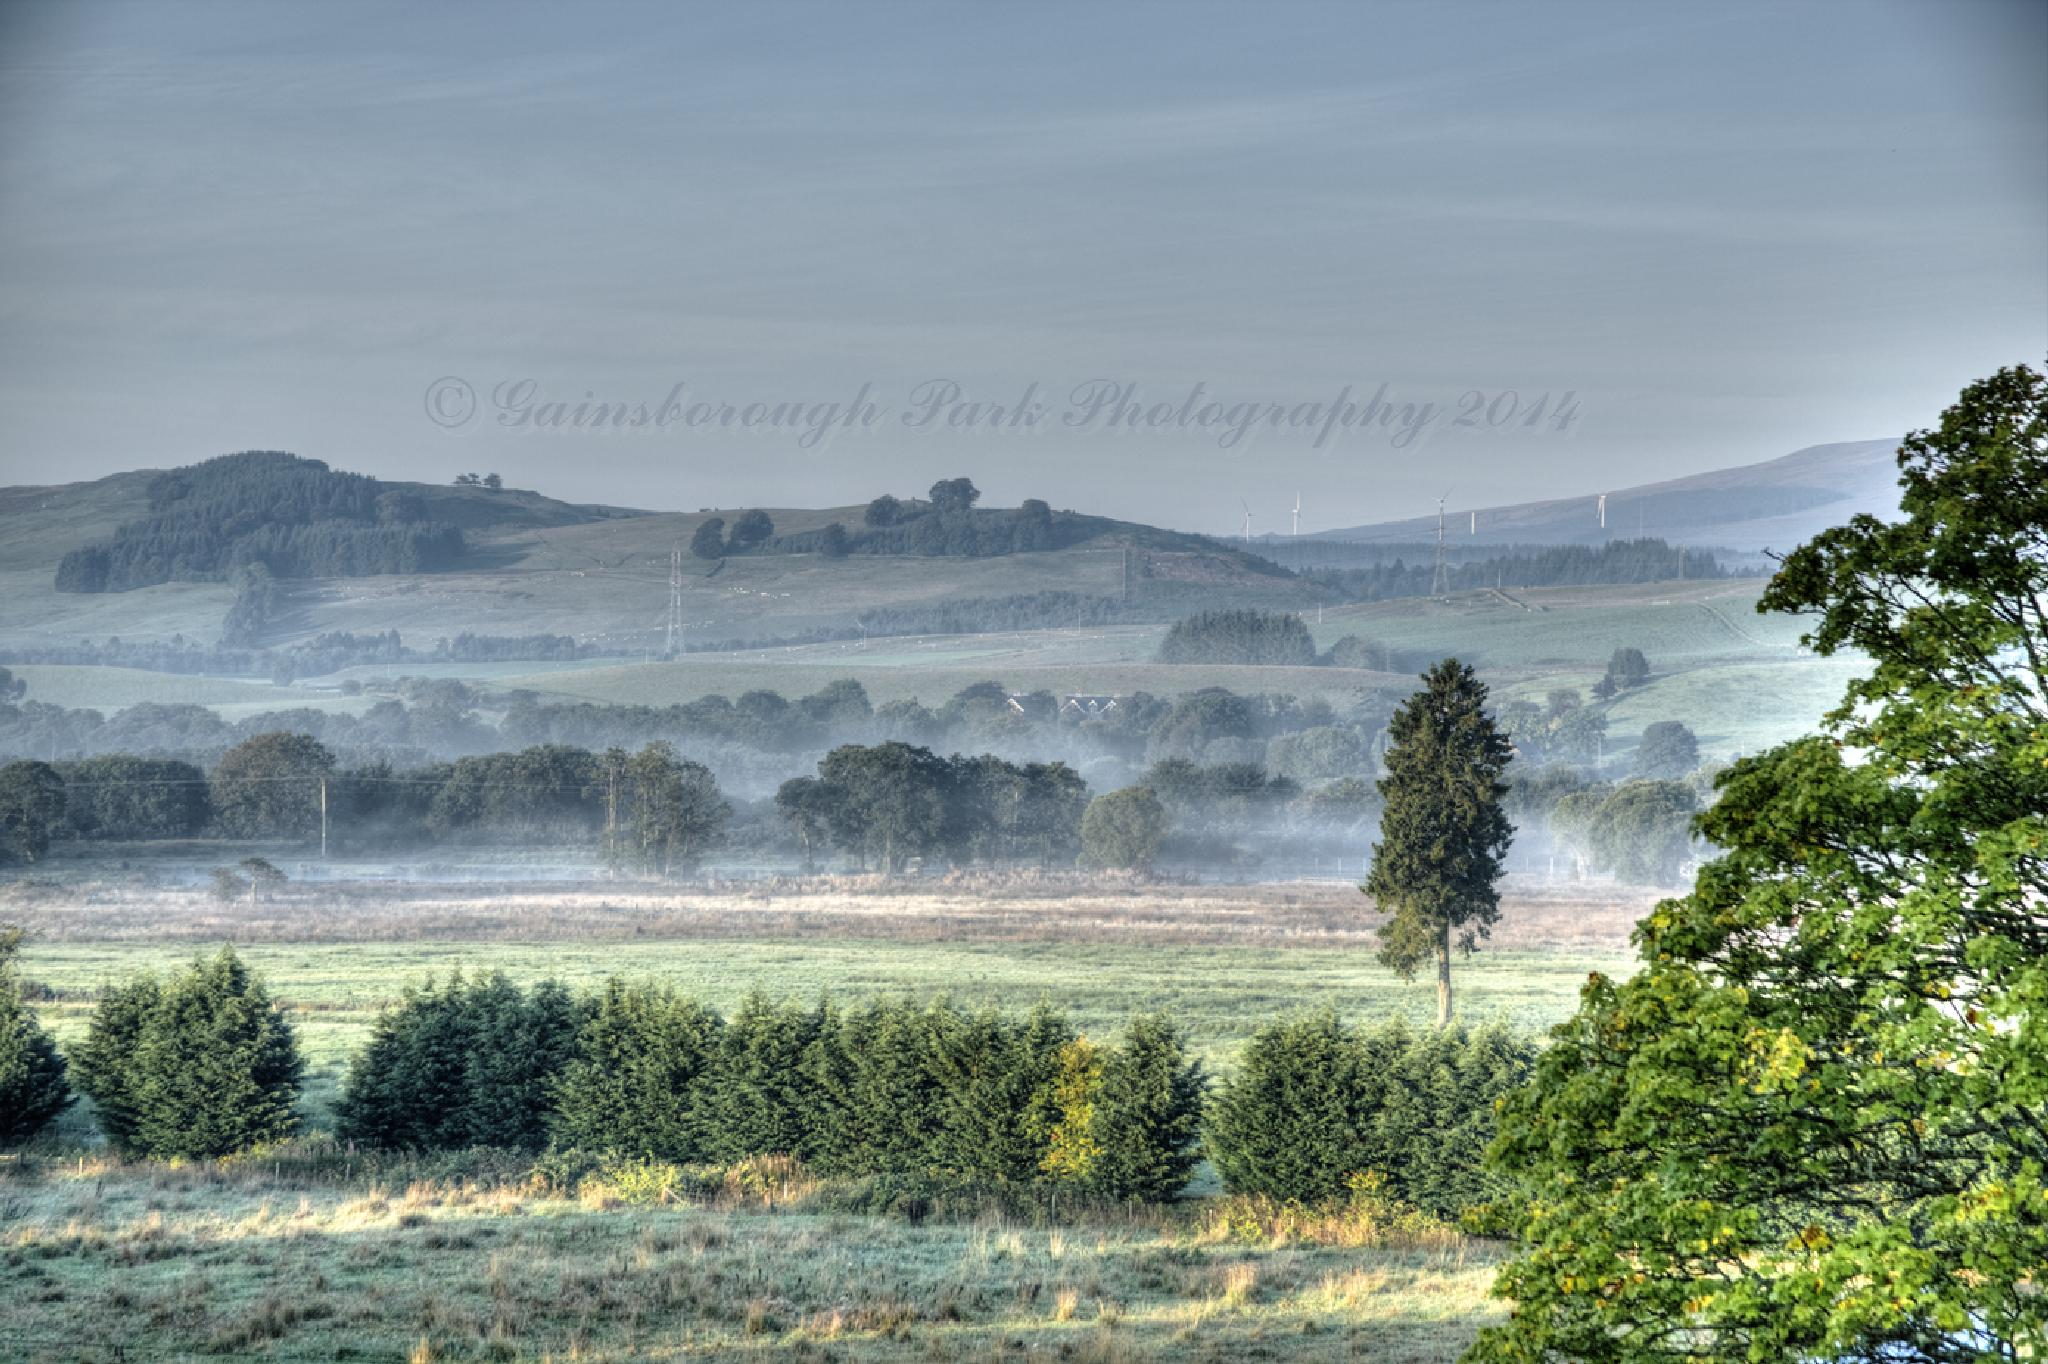 Morning Mist at Moffat by Gainsborough Park Photography